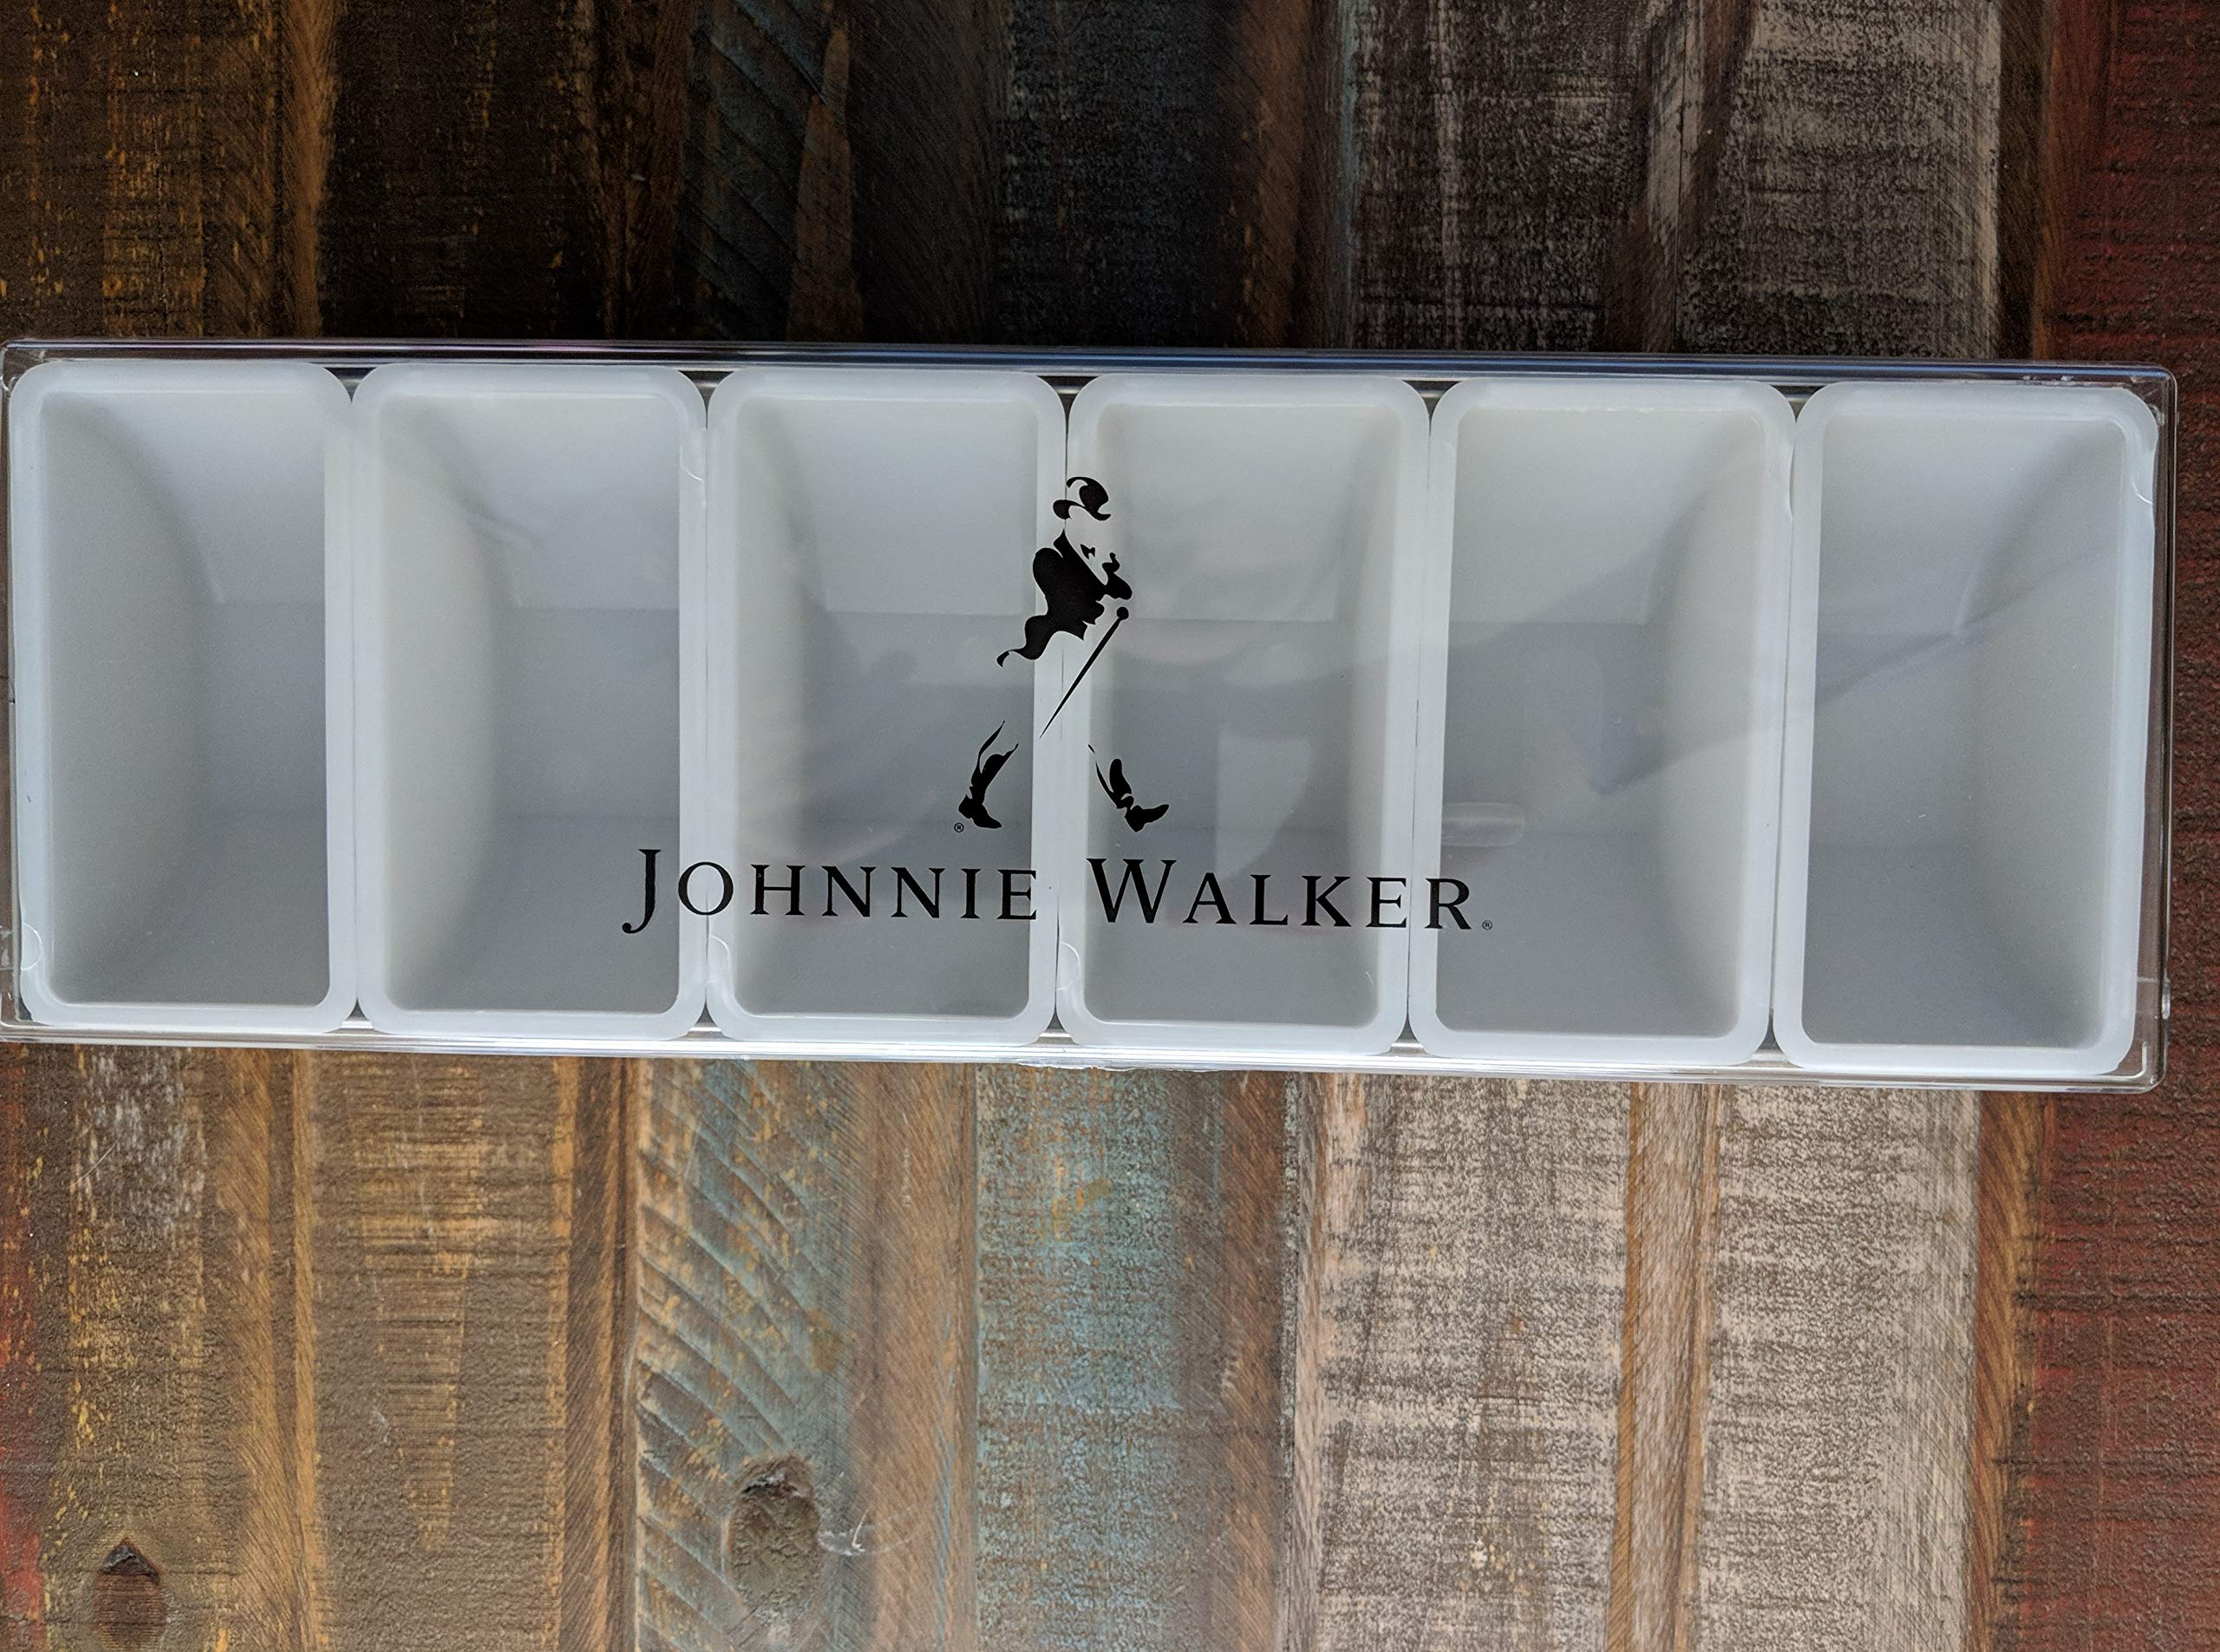 Johnnie Walker Condiment Caddy